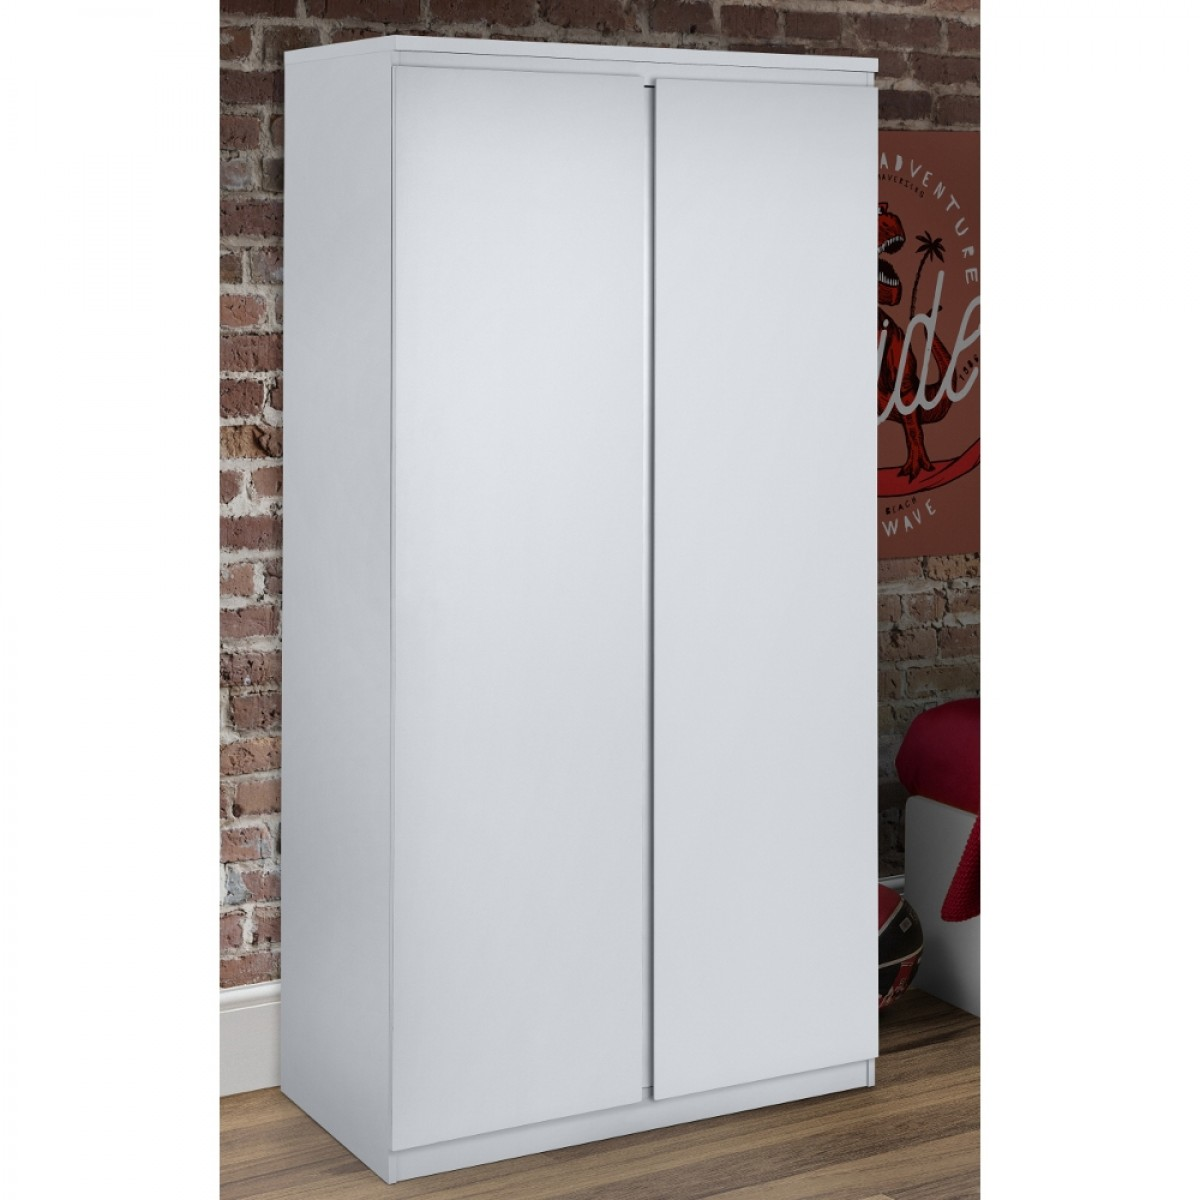 Jupiter White Wooden 2 Door Wardrobe